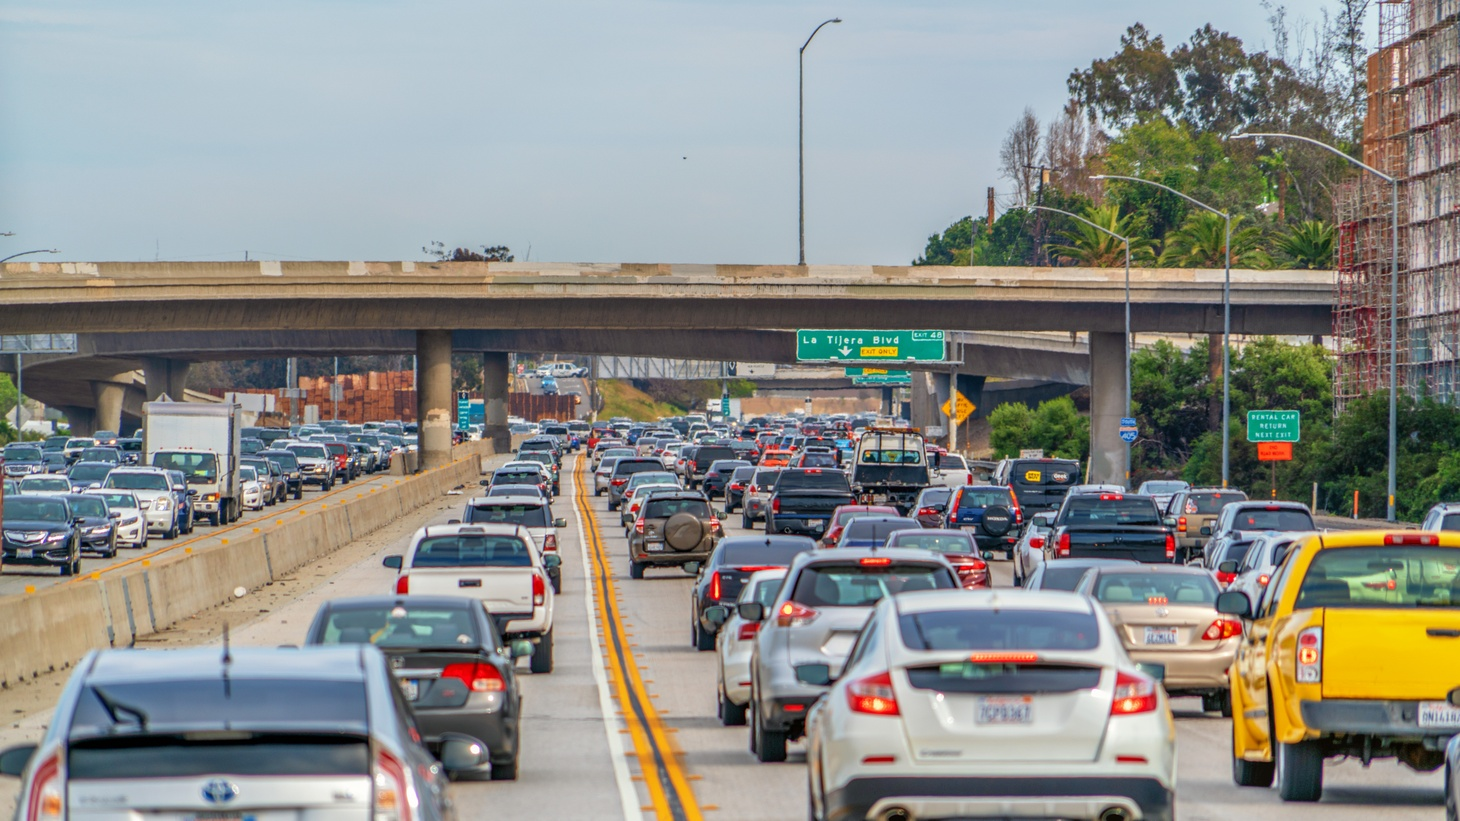 A typical day on the 405 freeway.